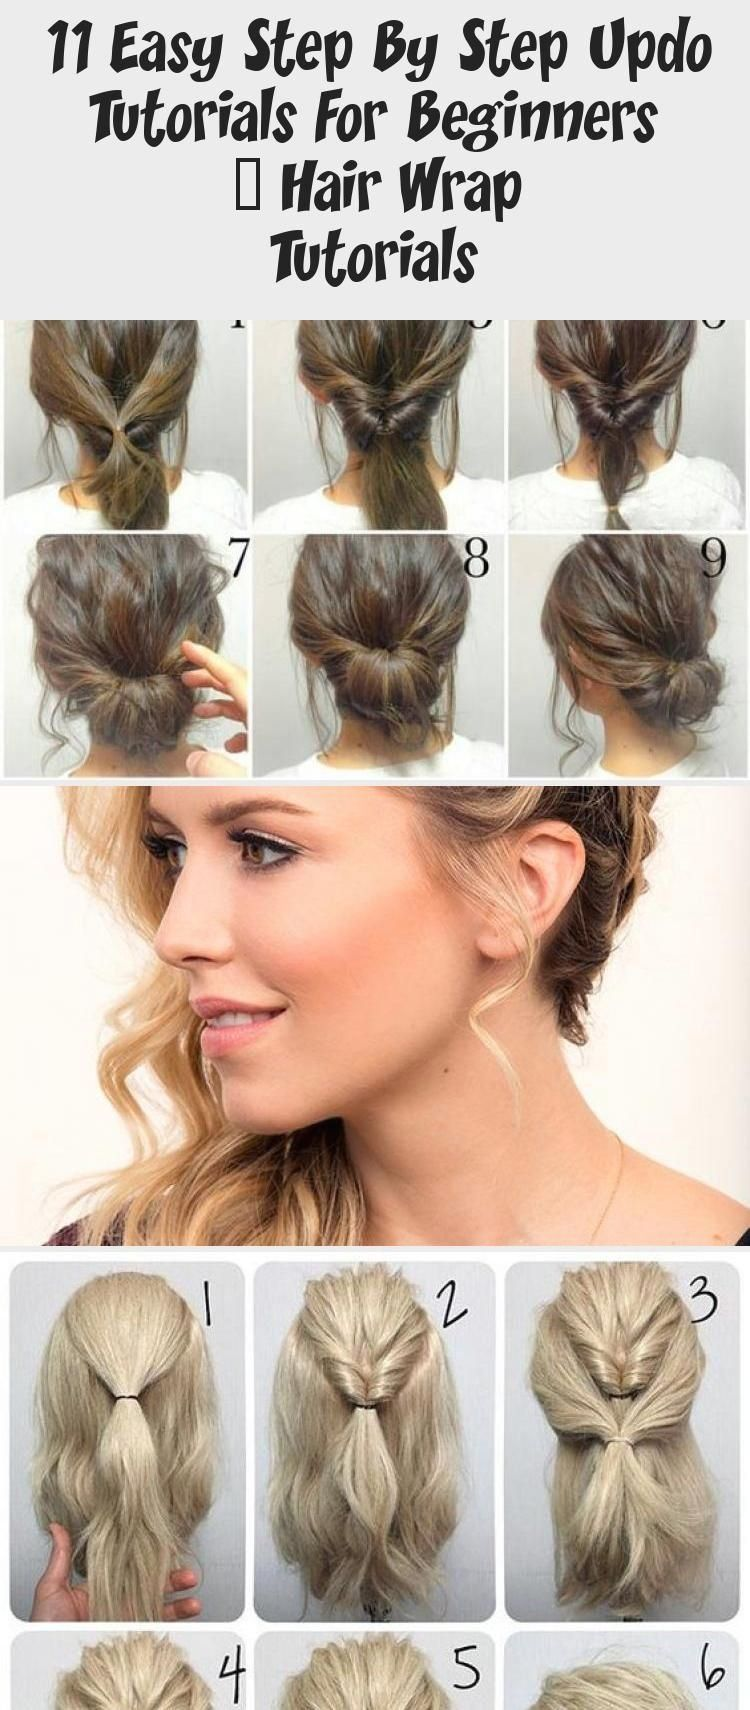 11 Easy Step By Step Updo Tutorials For Beginners Hair Wrap Tutorials Hair Styles Hair Style Ideas 1004 Updo Tutorial Hair Tutorial Pinup Hair Tutorial